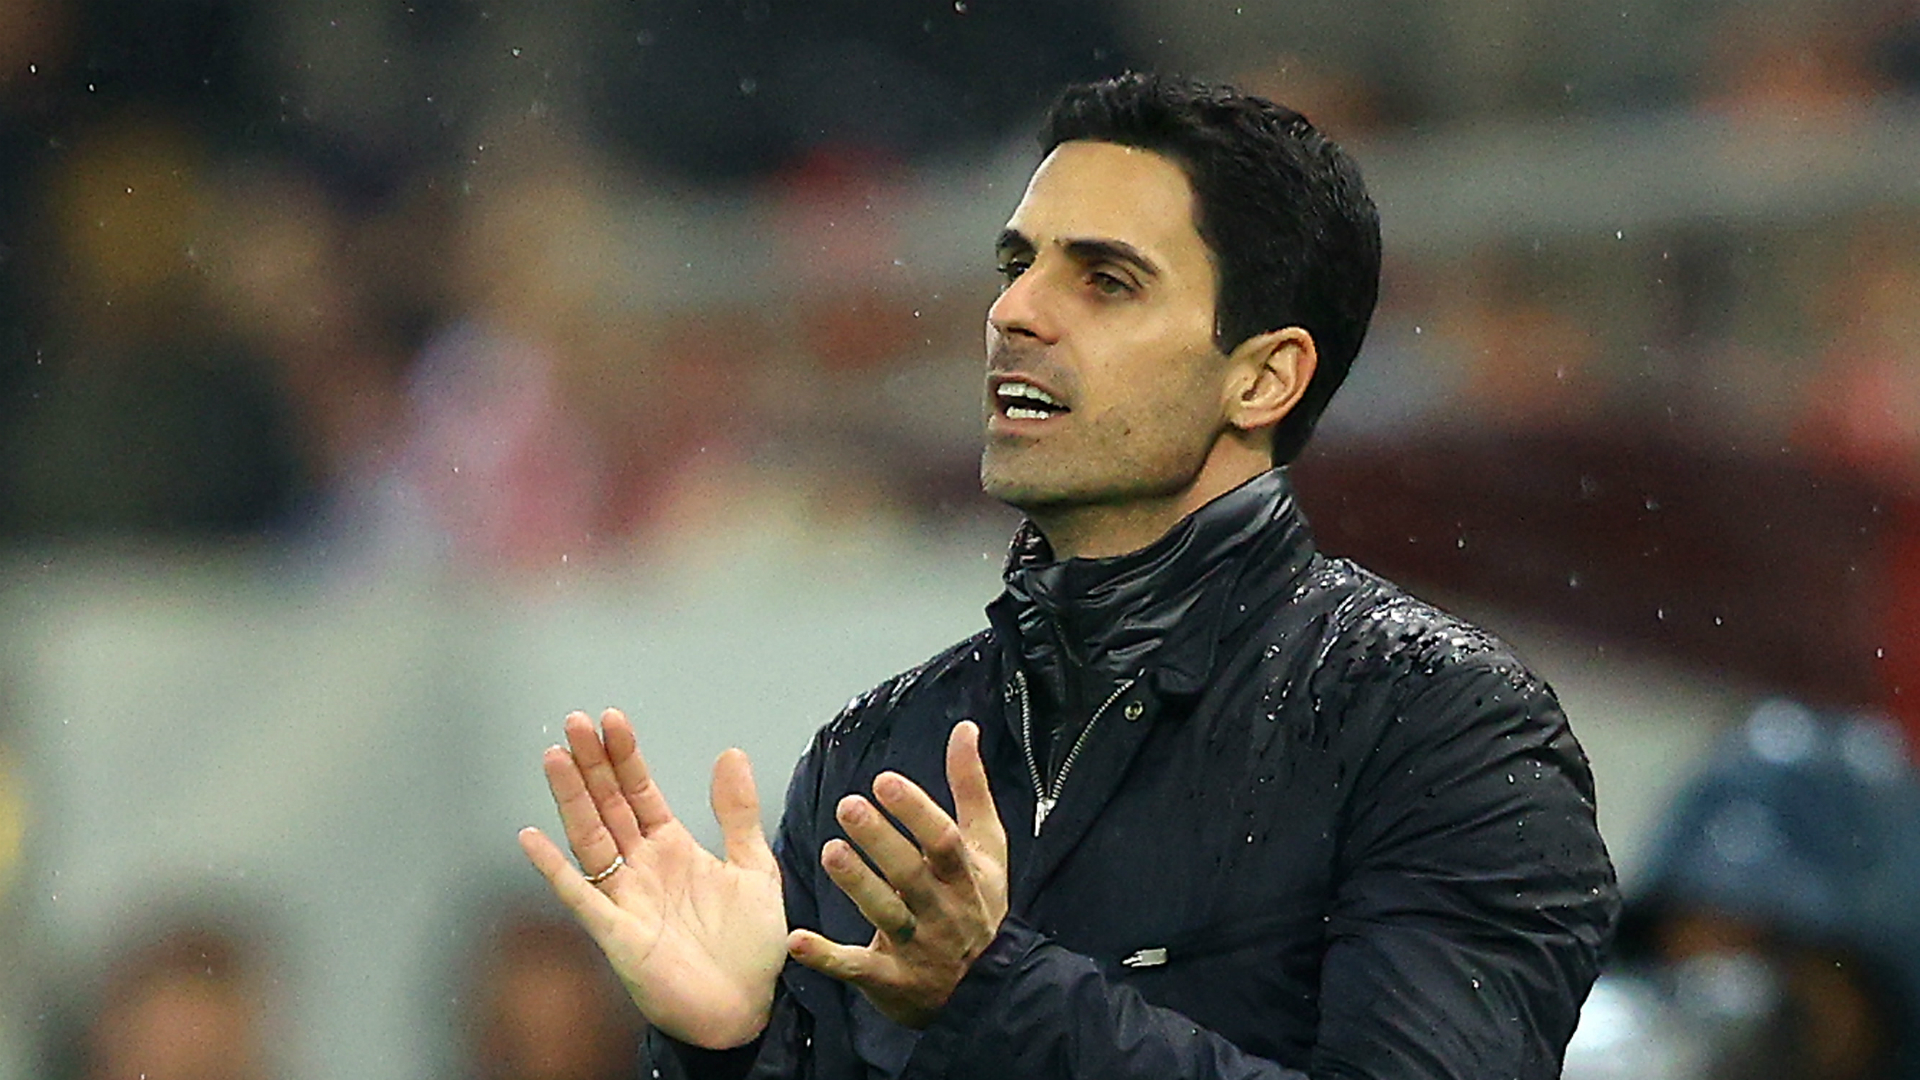 Arsenal planning two or three transfer window scenarios but may 'do nothing', says Arteta